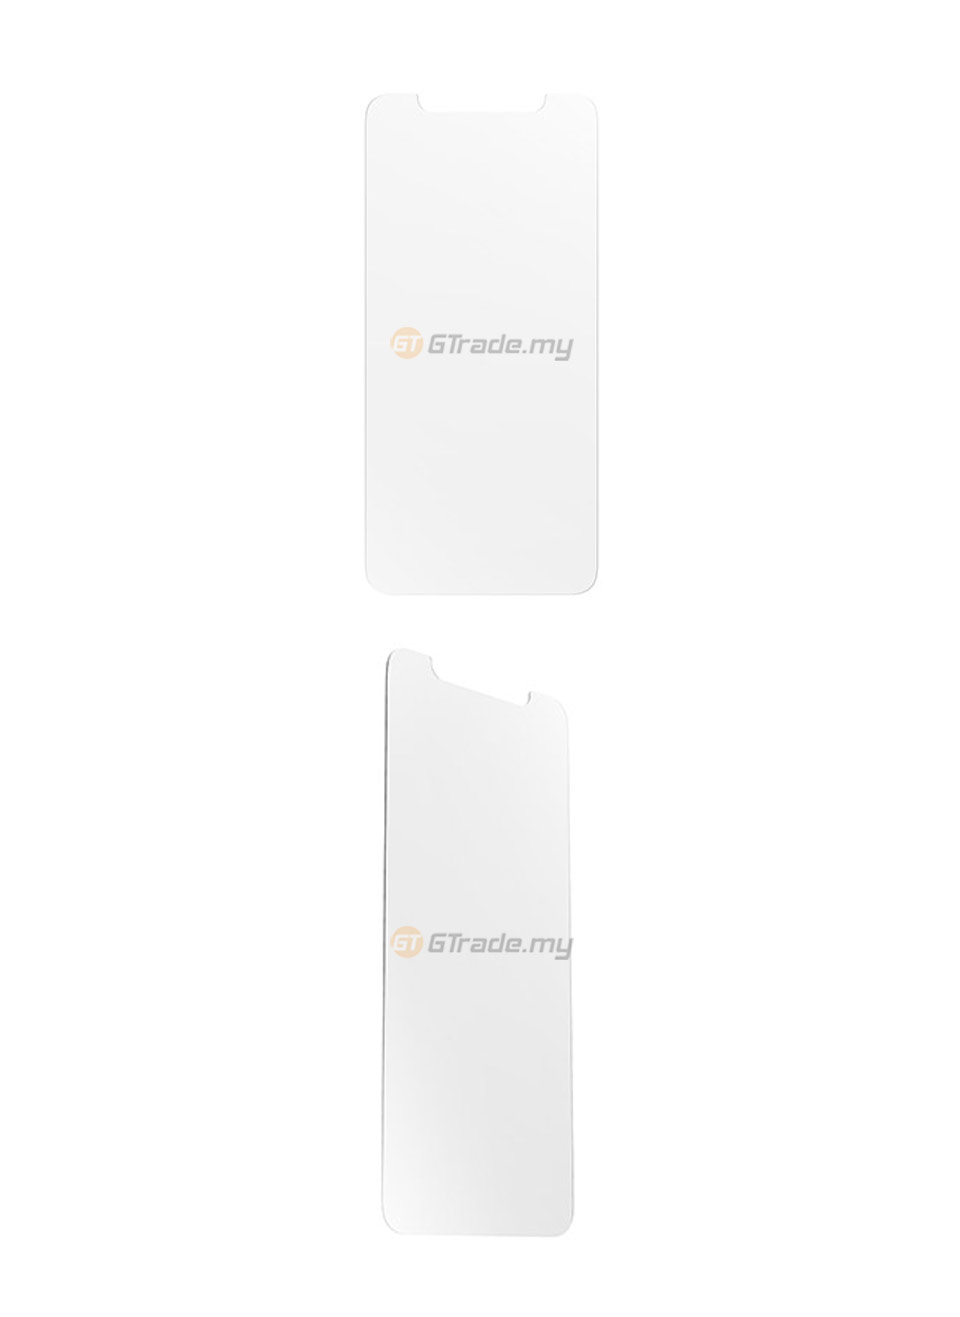 otterbox-alpha-glass-screen-protector-apple-iphone-xr-p